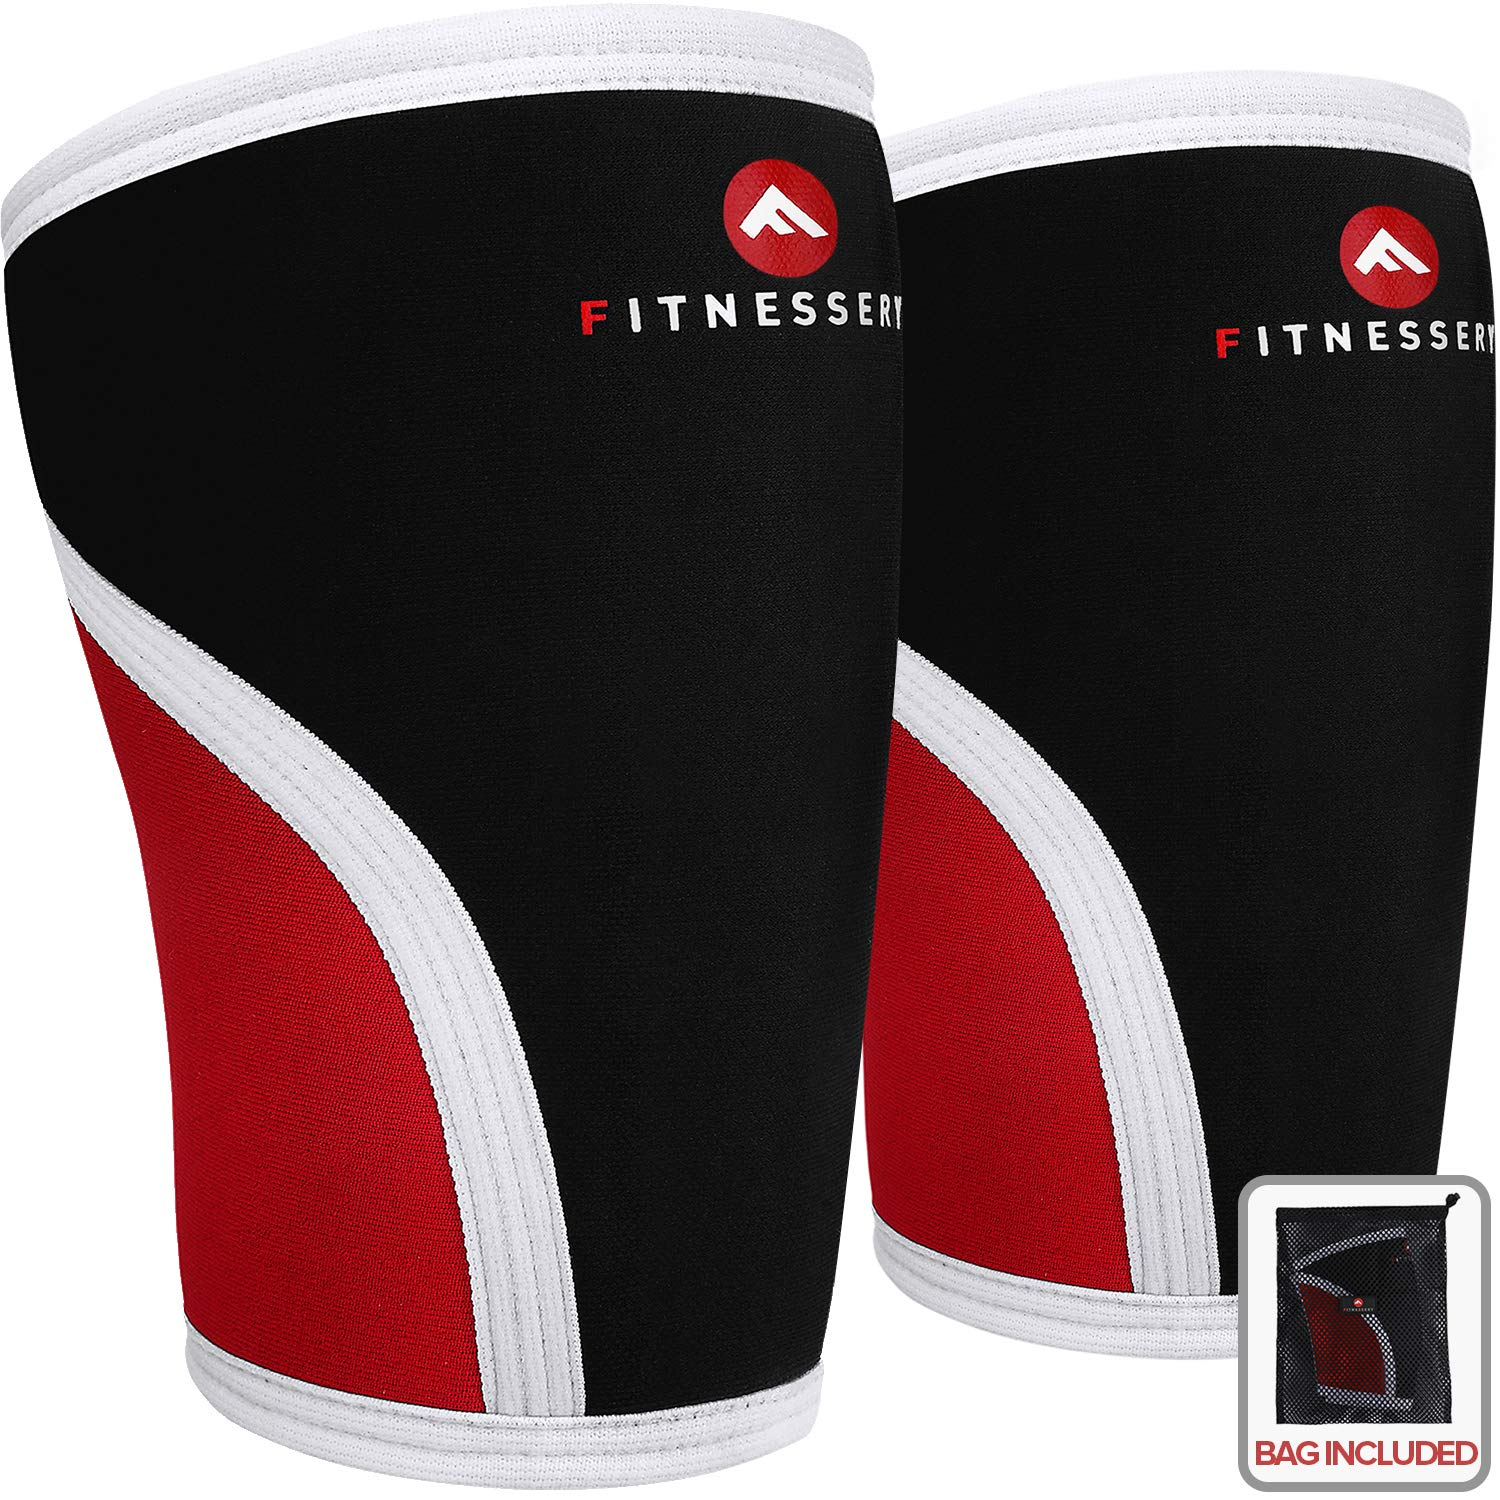 Knee Sleeves for Crossfit